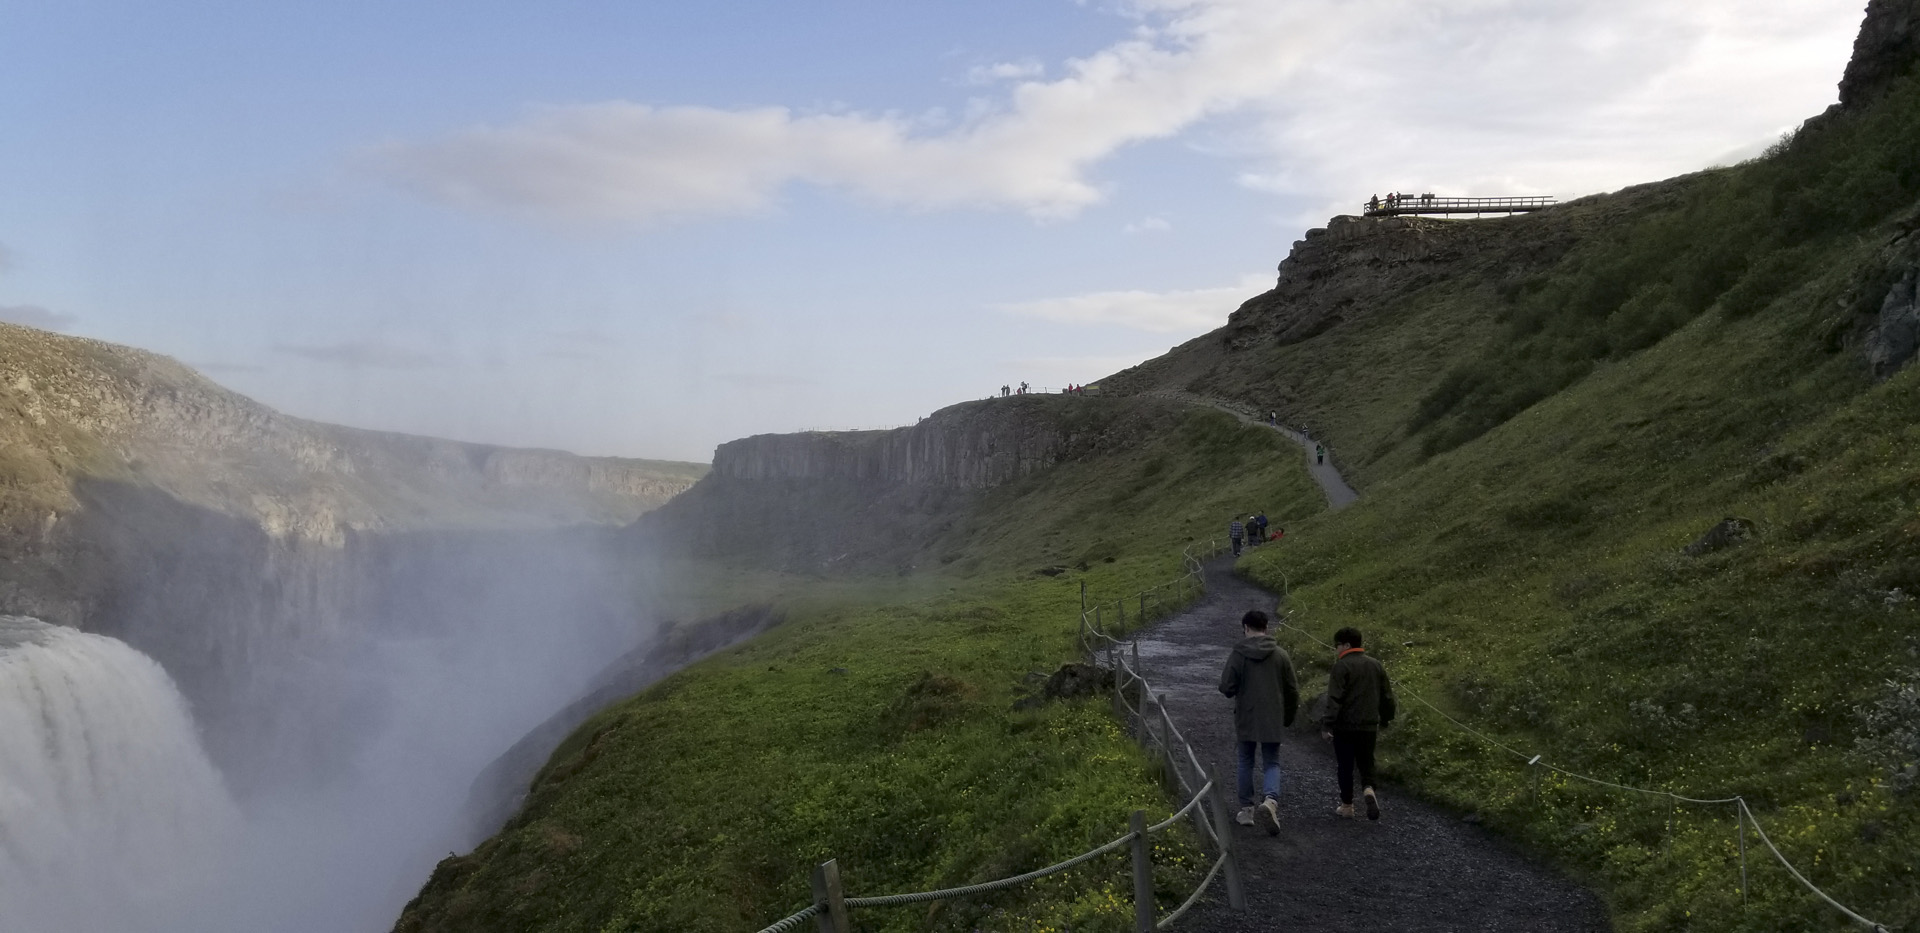 The path leading back to the visitor entrance to Gullfoss, Suðurland region, Iceland.